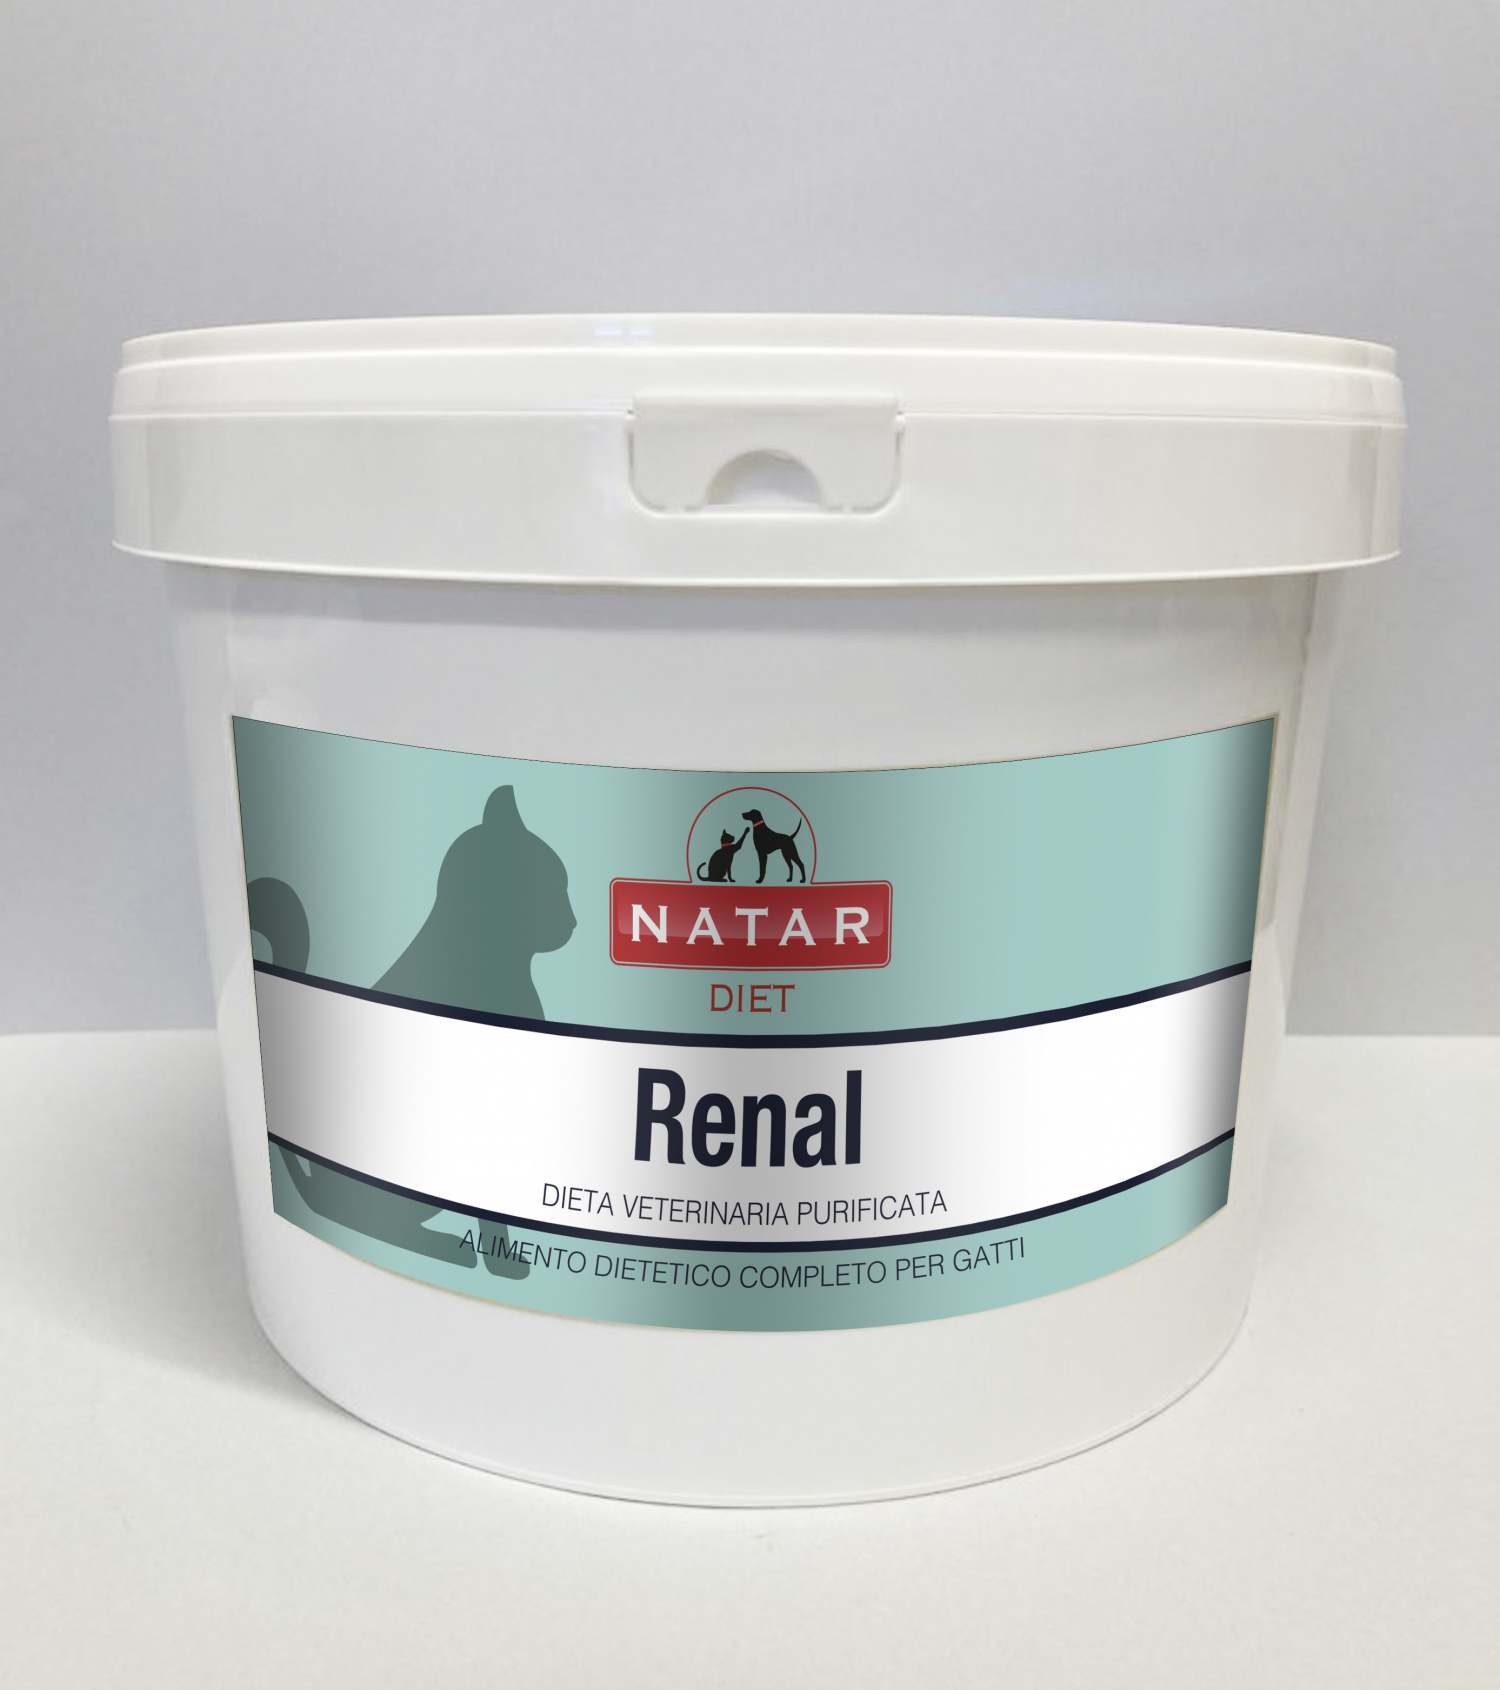 Natar Diet Renal for cats